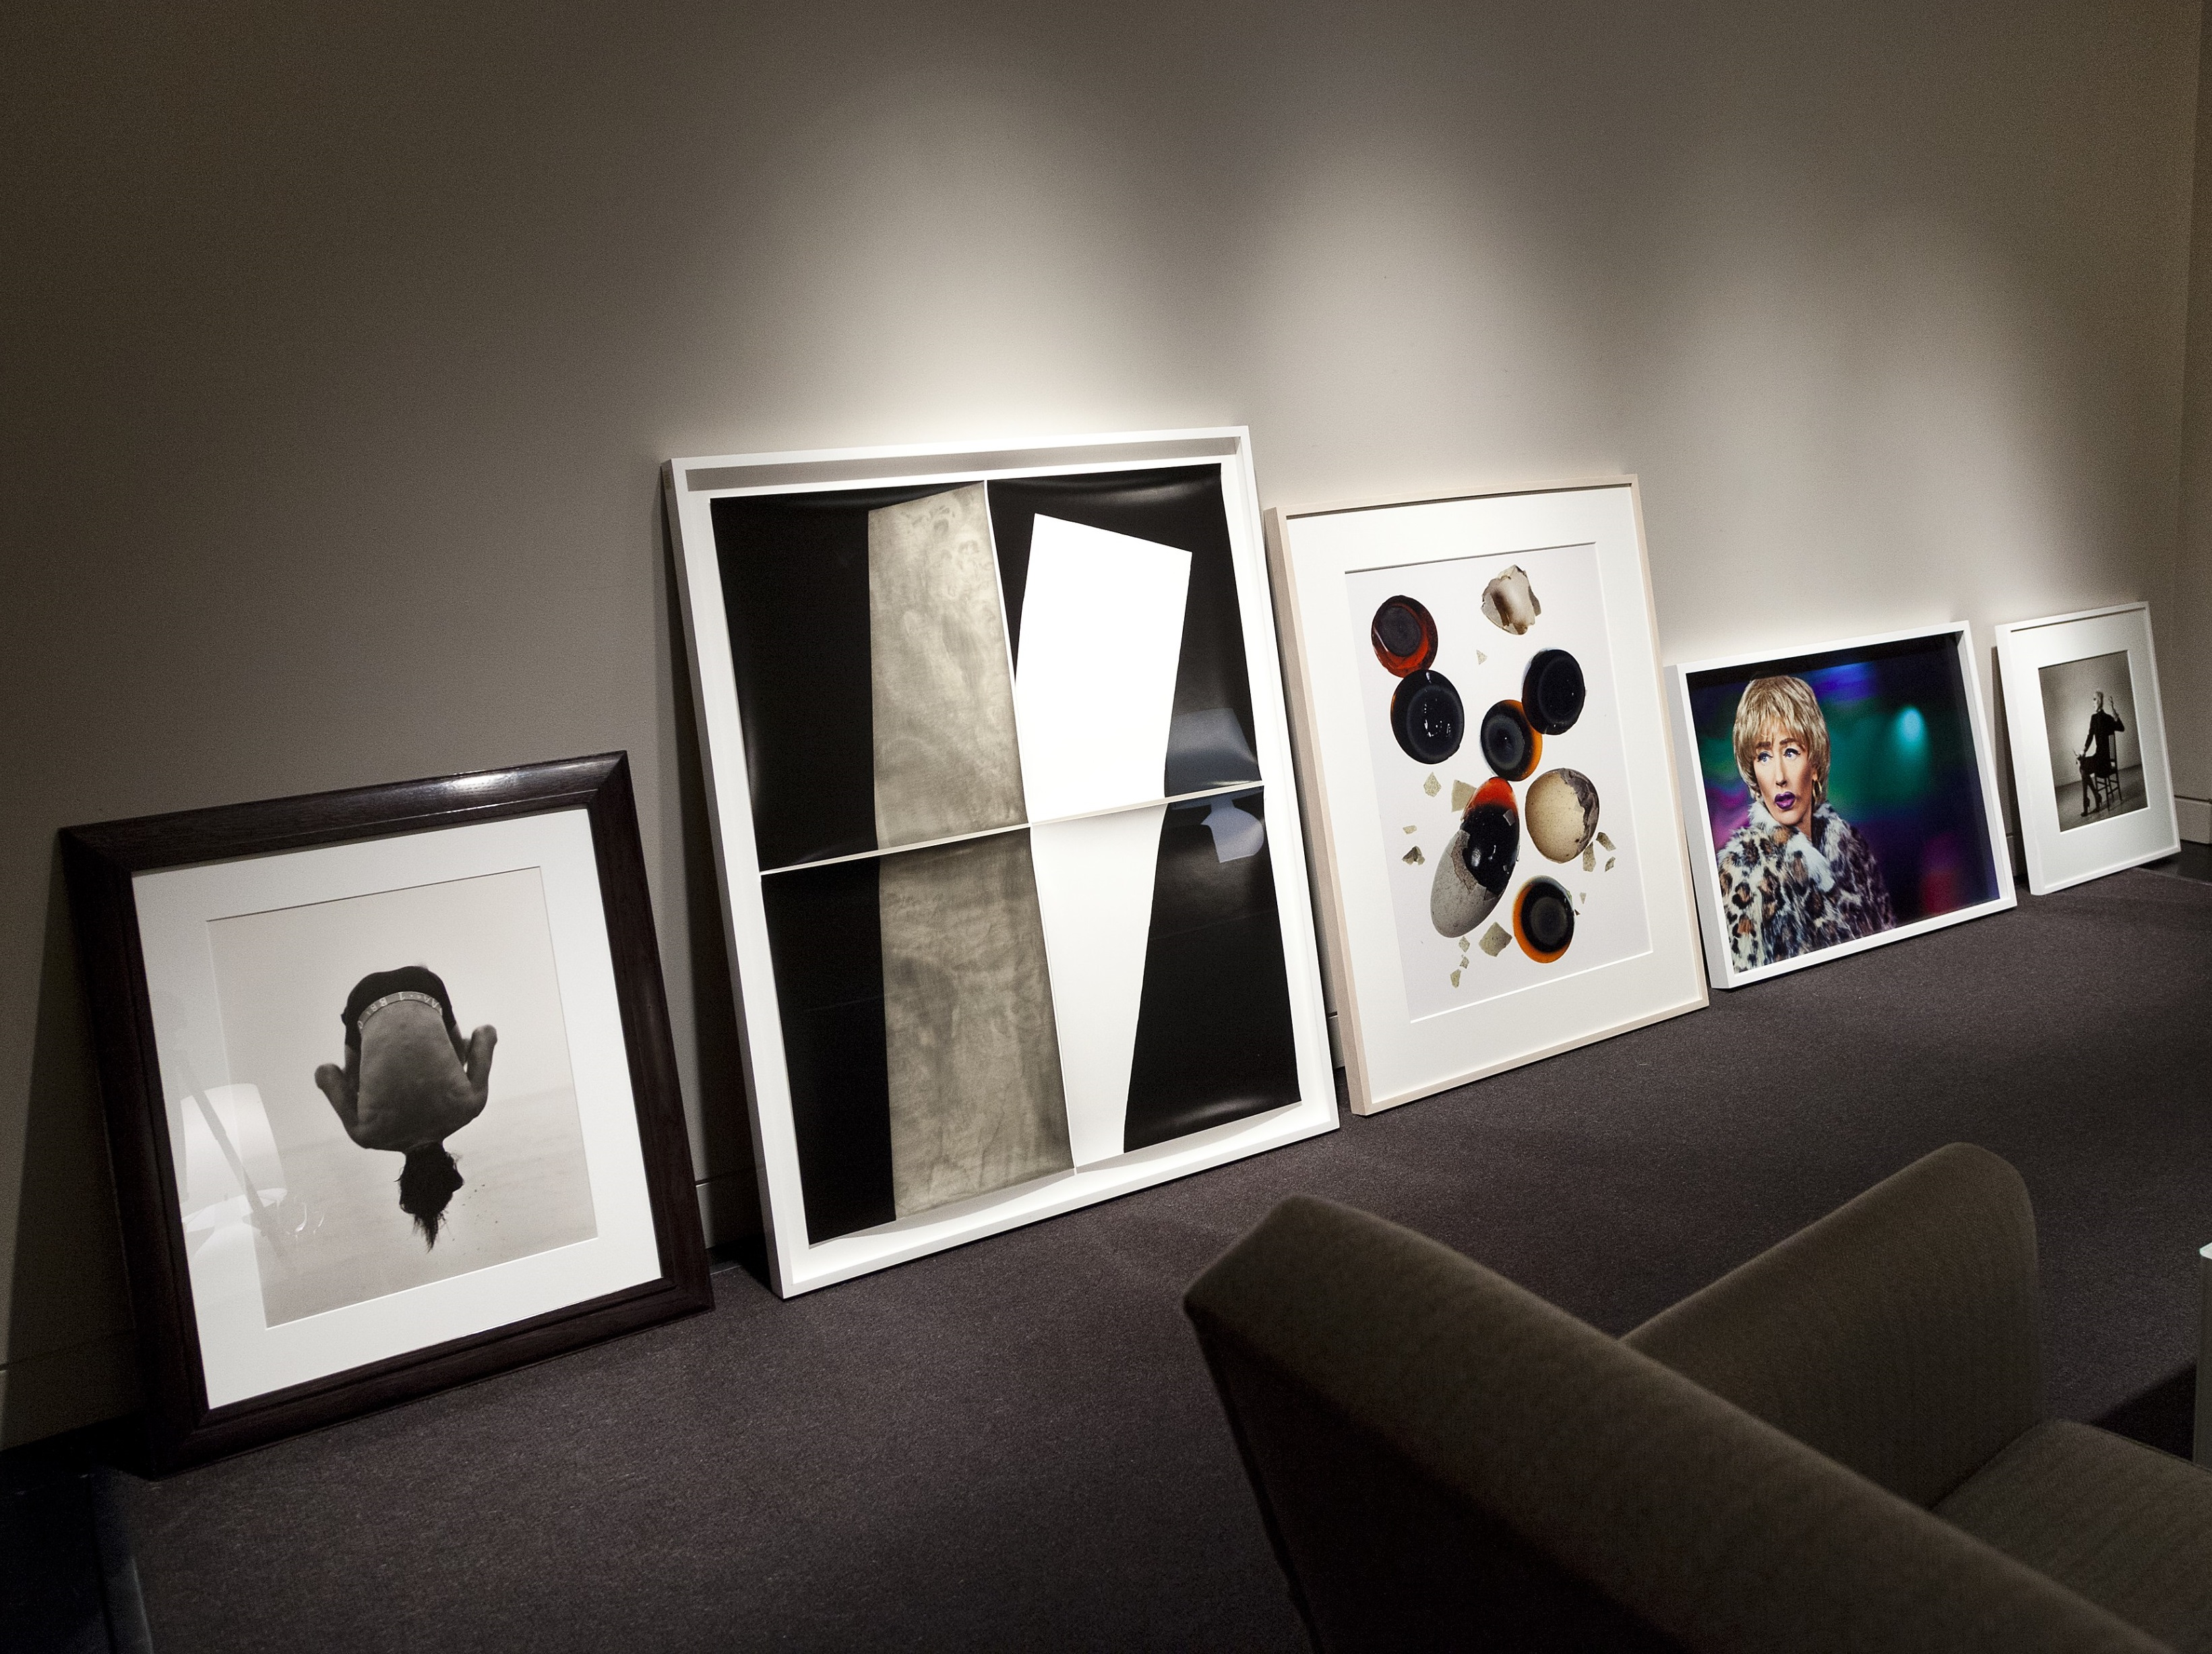 Works to be auctioned for the Elton John AIDS Foundation on April 6.